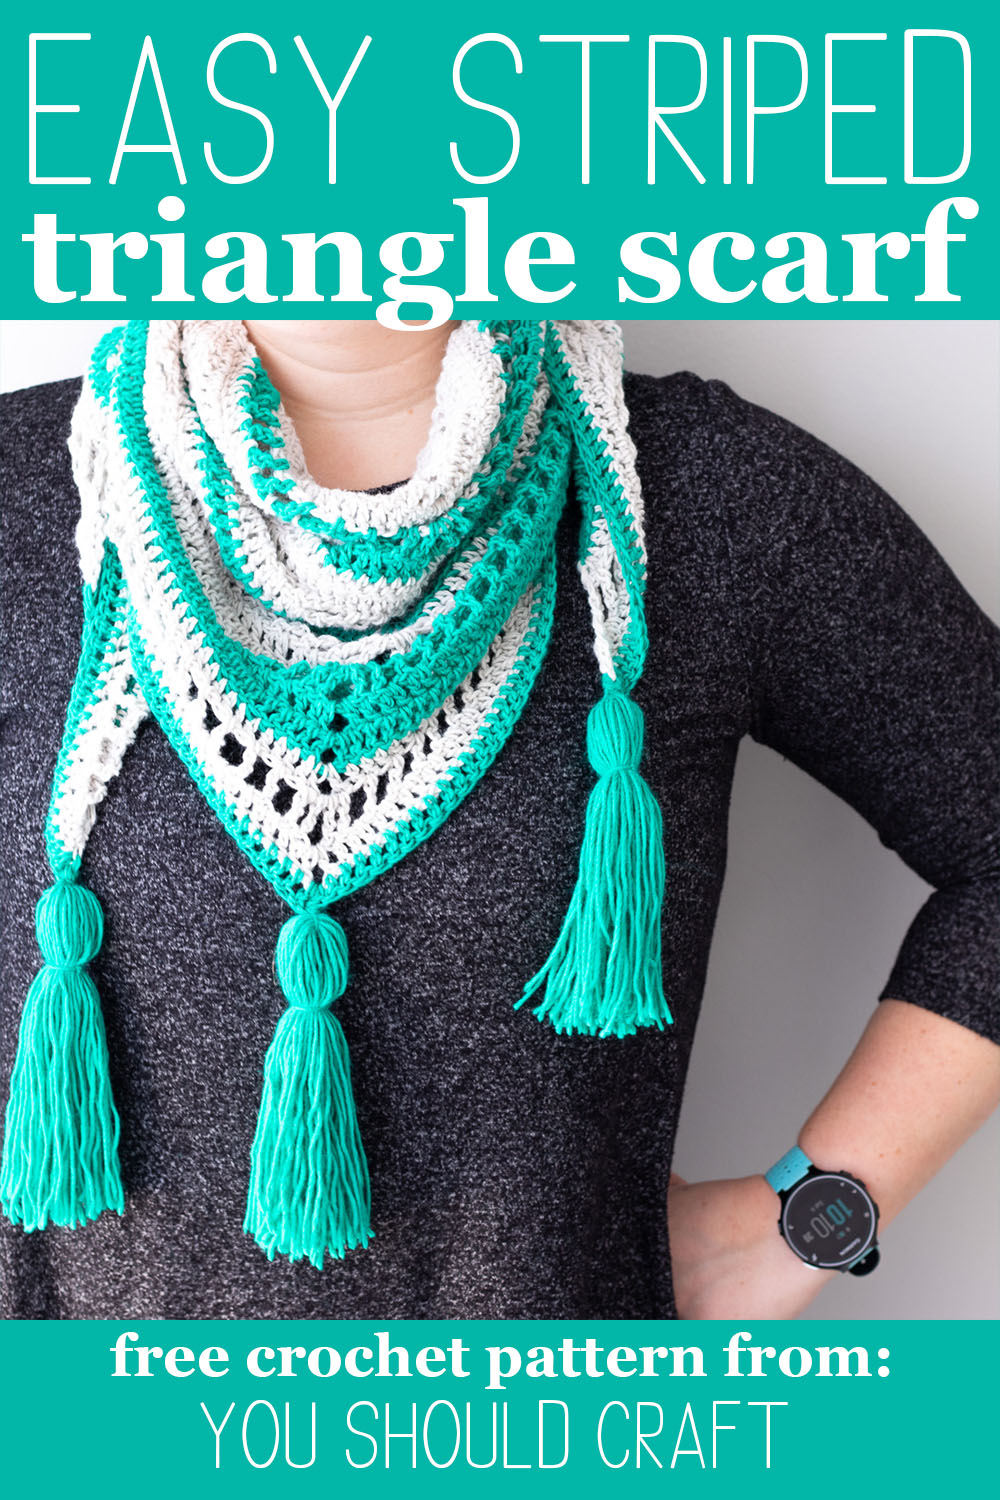 woman in a dark grey dress with a teal and grey striped triangle scarf crocheted, with tassels